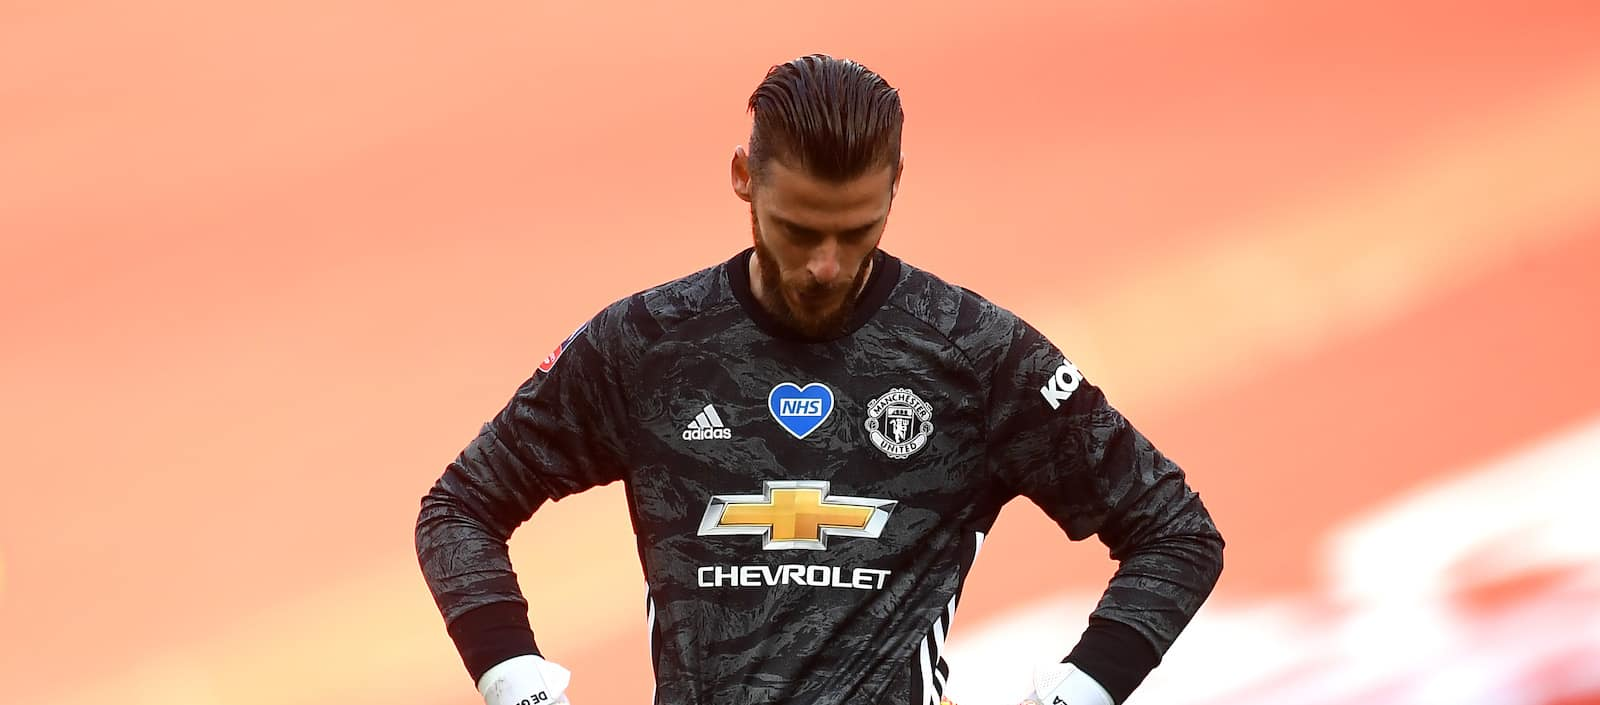 Ole Gunnar Solskjaer states David de Gea knows he should've done better